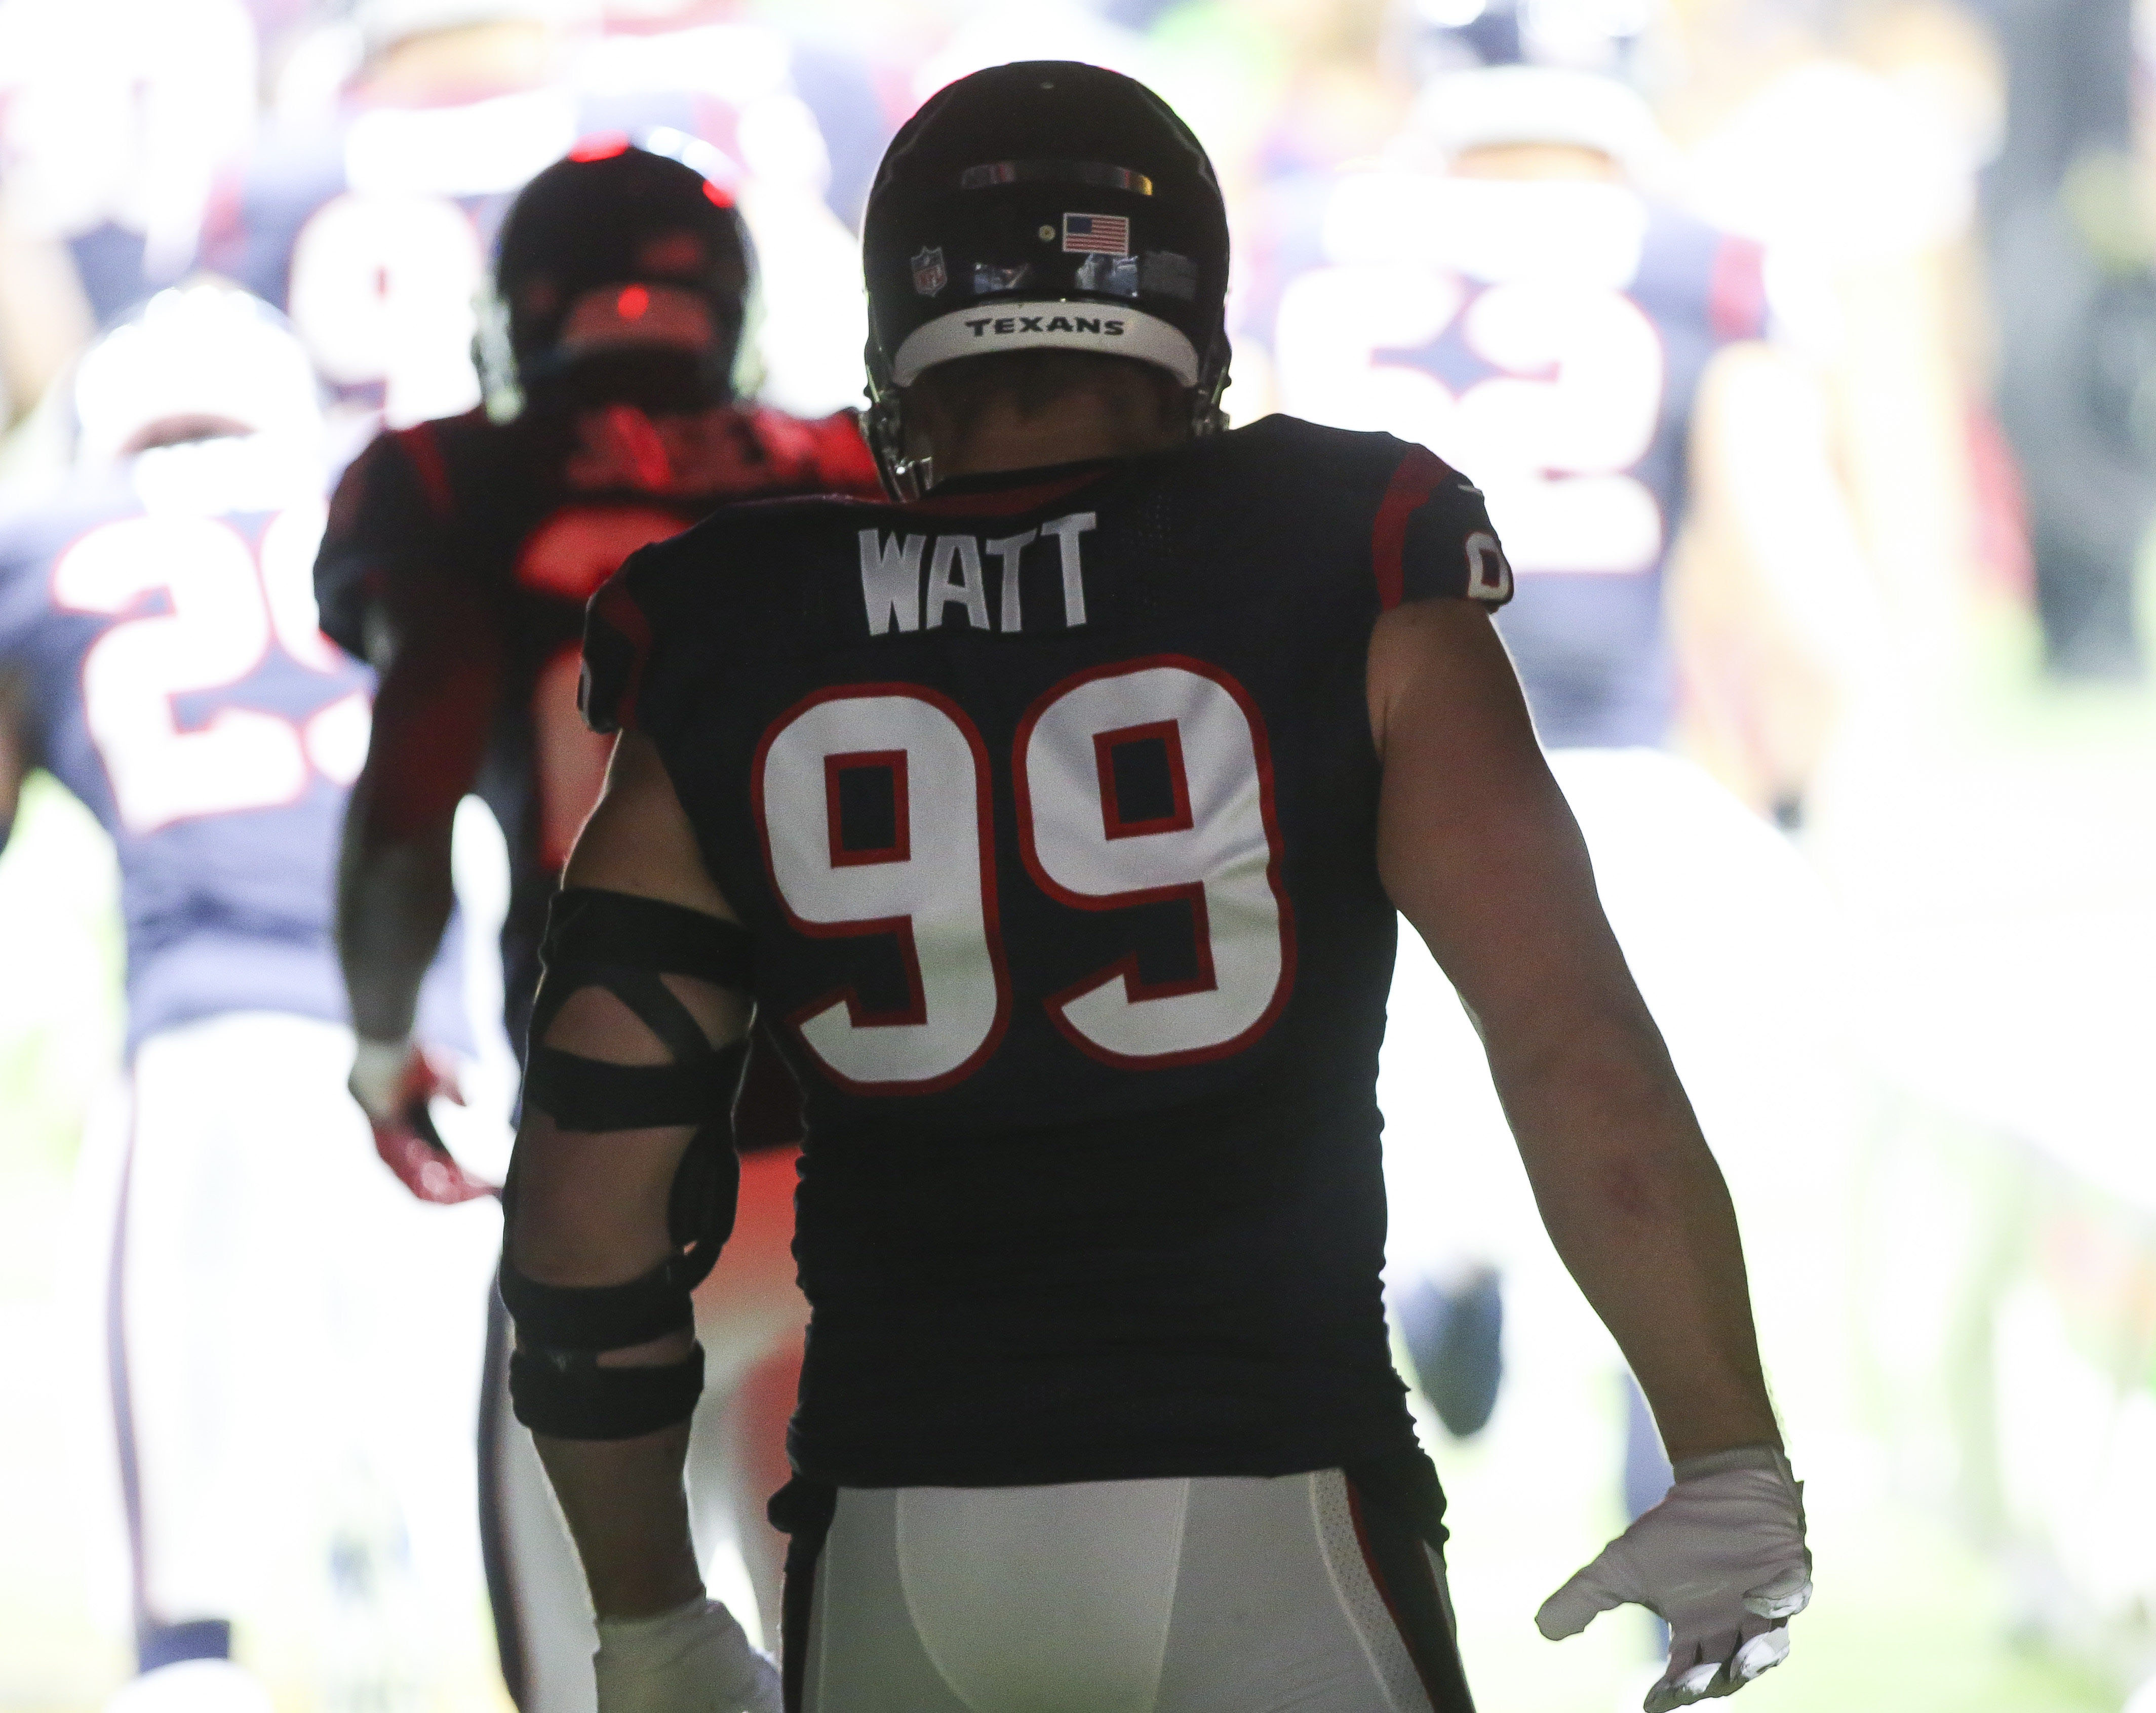 outlet store 822cb d97cb Houston Texans Injury News: J.J. Watt Passes Physical, Will ...